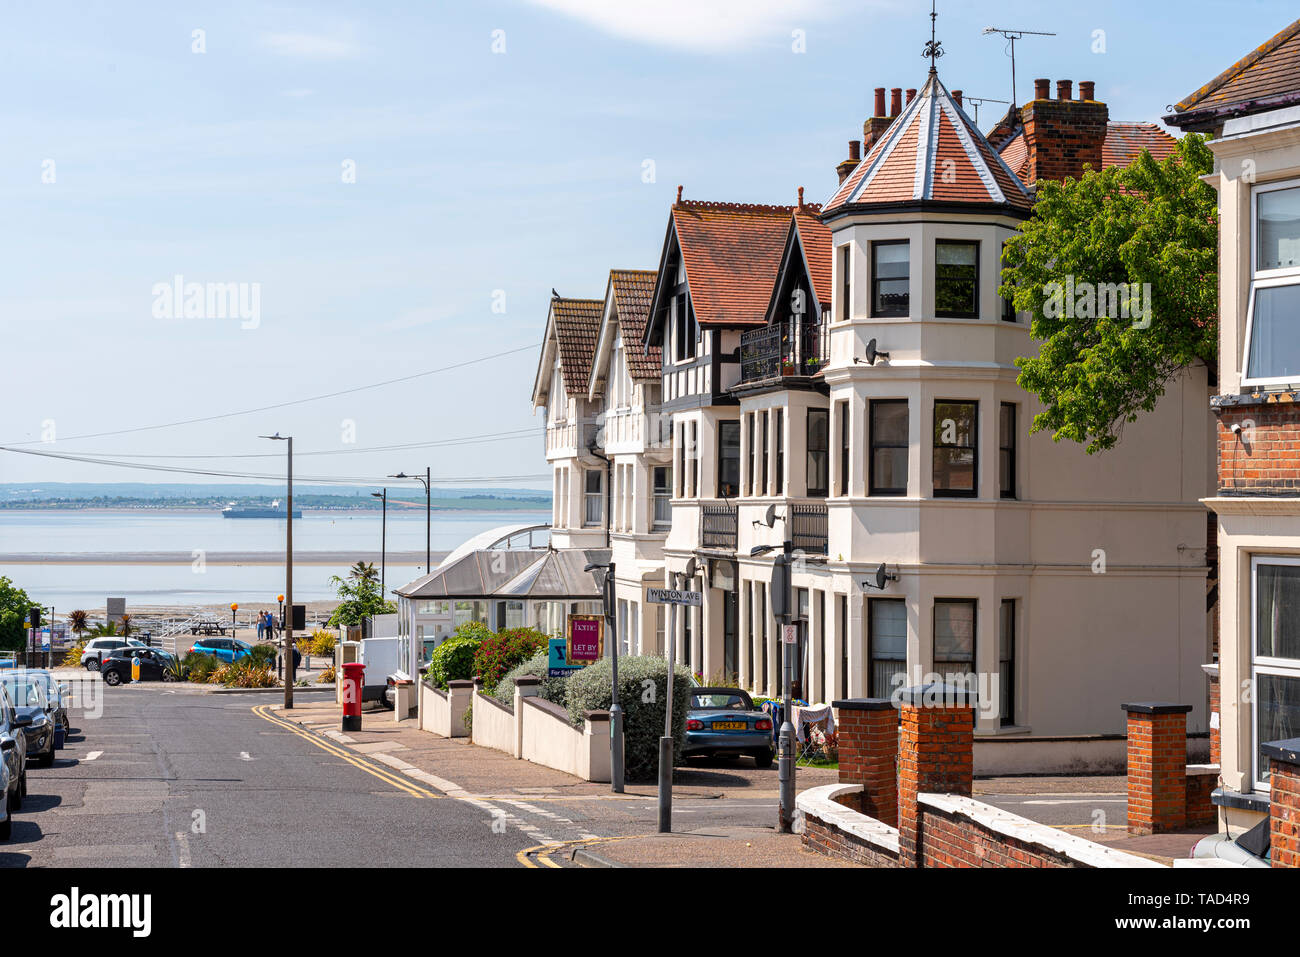 Westcliff Avenue in Westcliff on Sea, Southend, Essex, UK looking towards the Thames Estuary on seafront. Seaside town. Space for copy Stock Photo